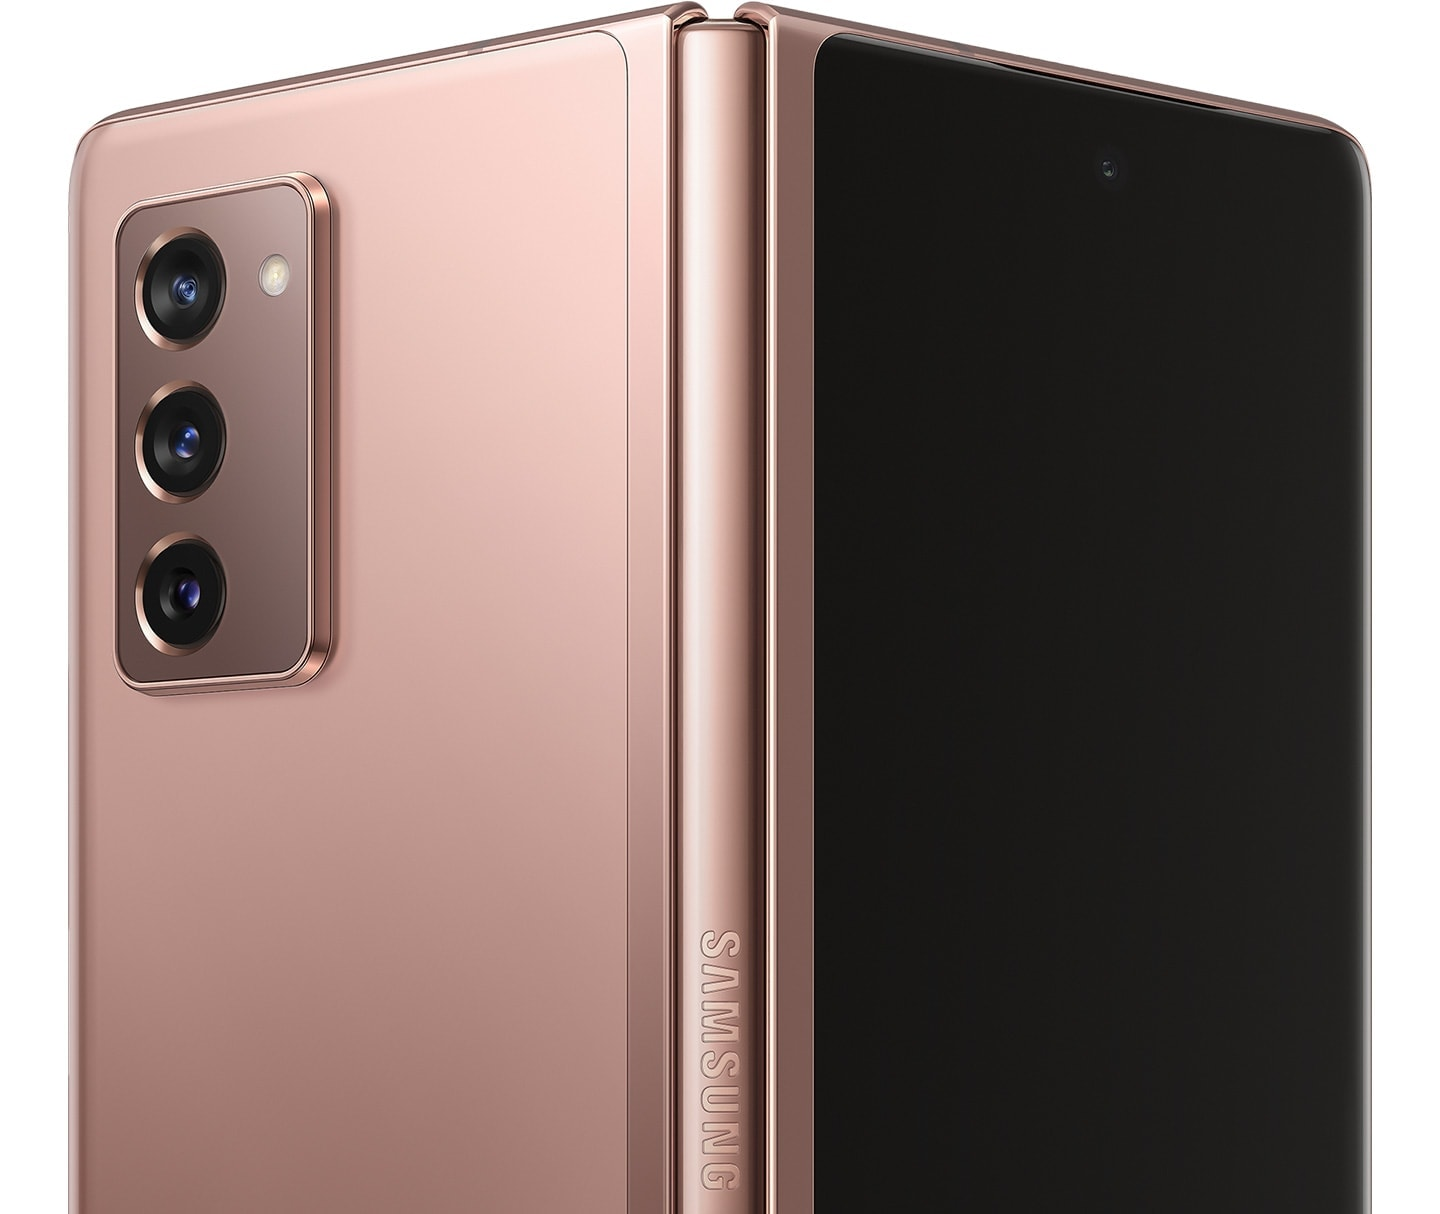 Galaxy Z Fold2 5G in Mystic Bronze, half unfolded and seen from the rear to show the Hideaway Hinge.